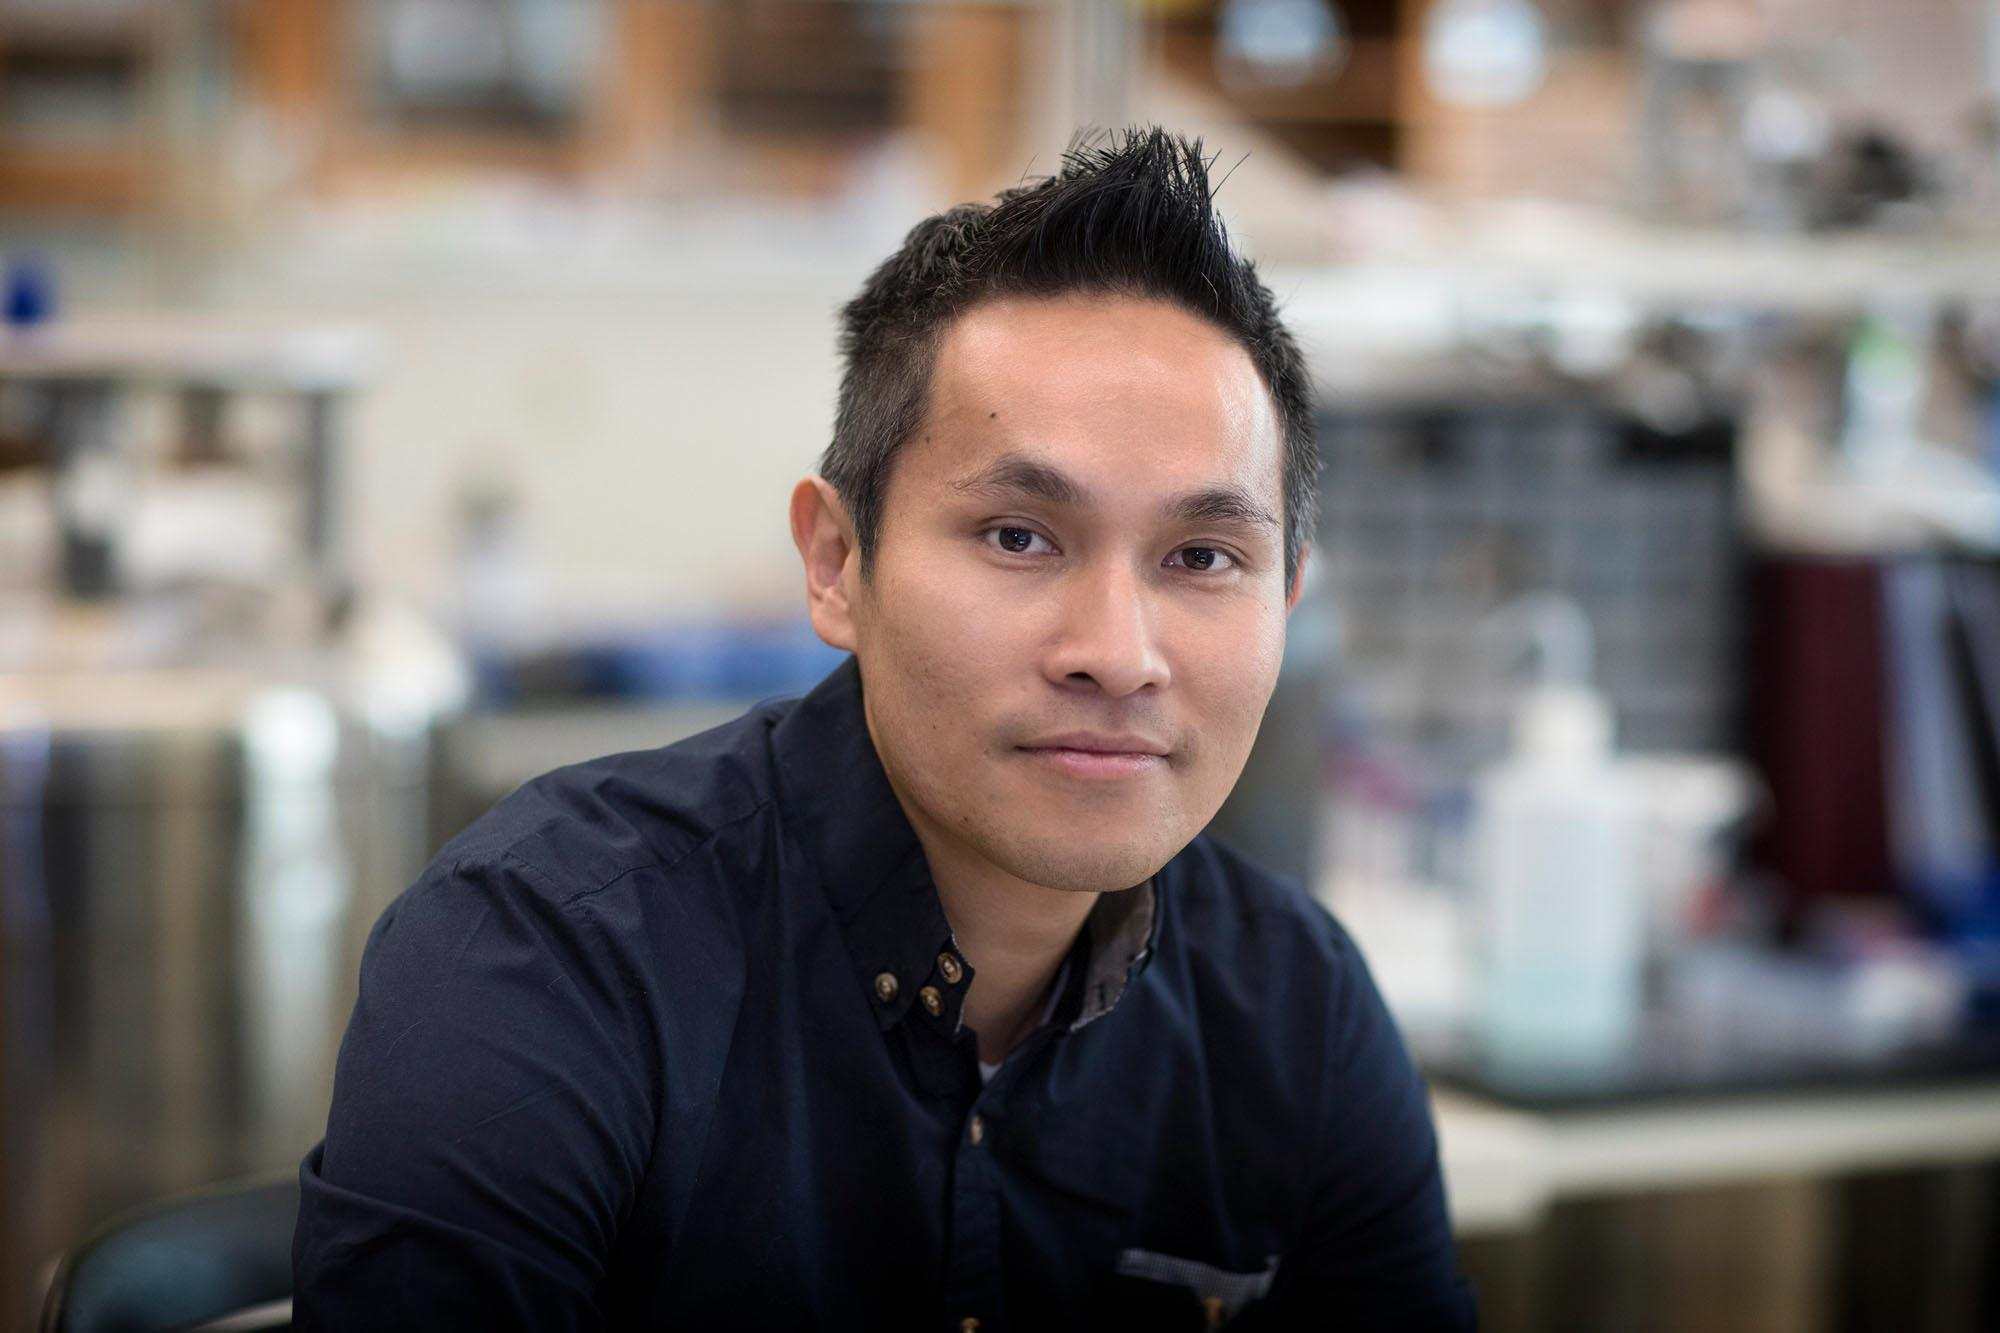 Researcher Ken Hsu focuses on using chemistry to modulate the immune system.